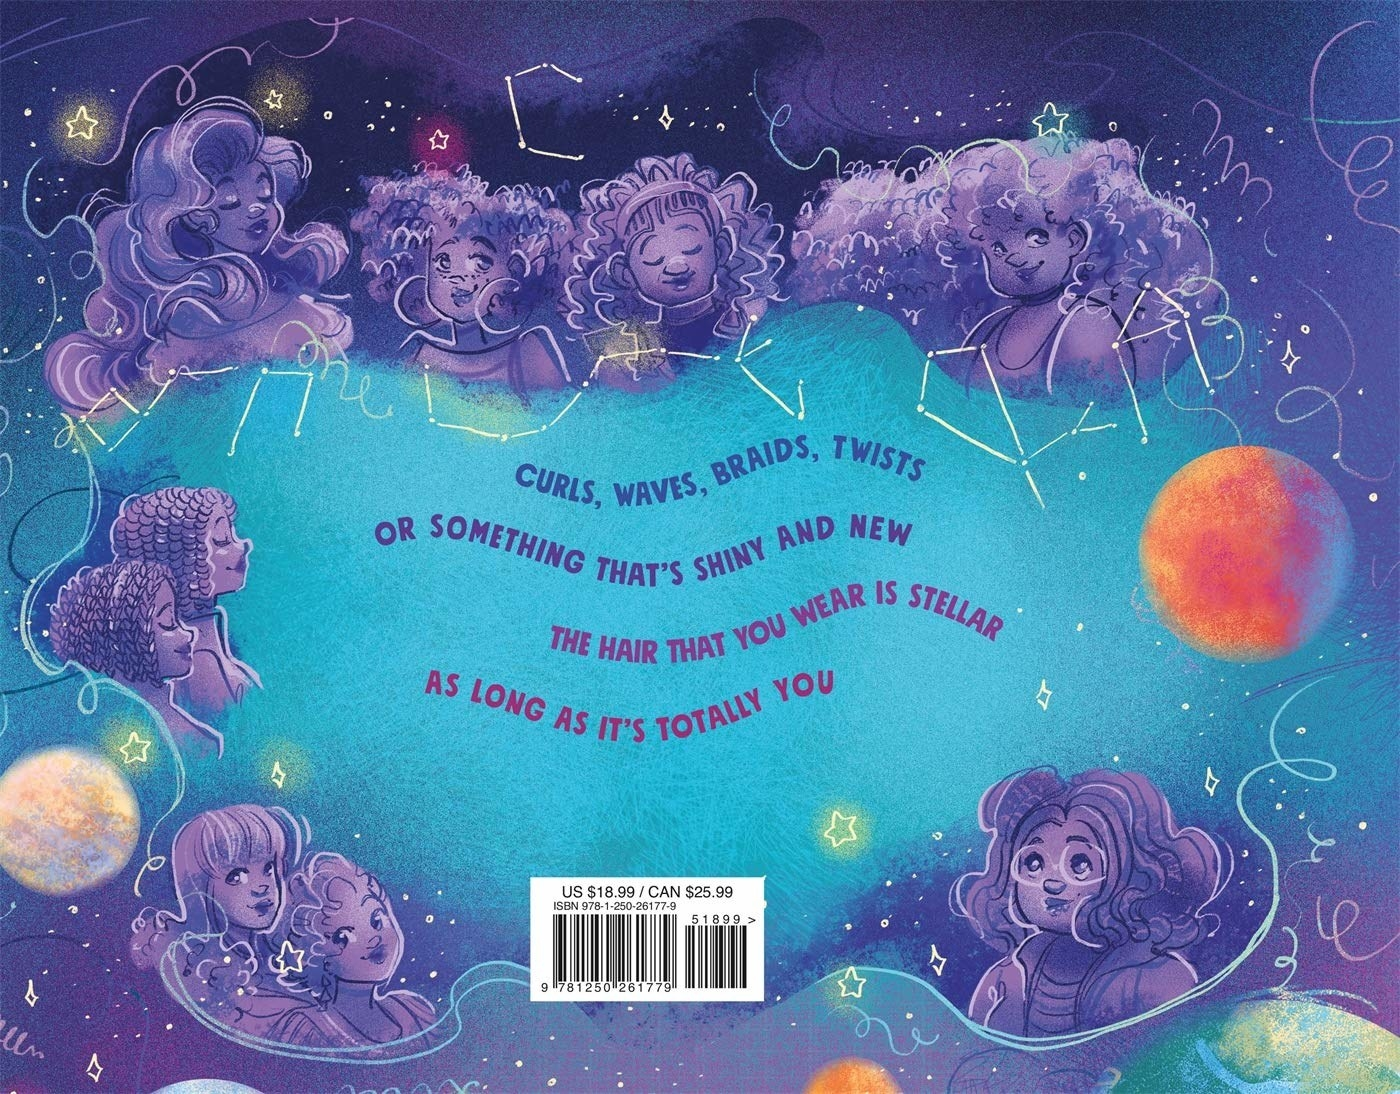 """The back cover which says """"Curls, waves, braids, twists, or something that's shiny and new. The hair you wear is stellar as long as it's totally you."""""""